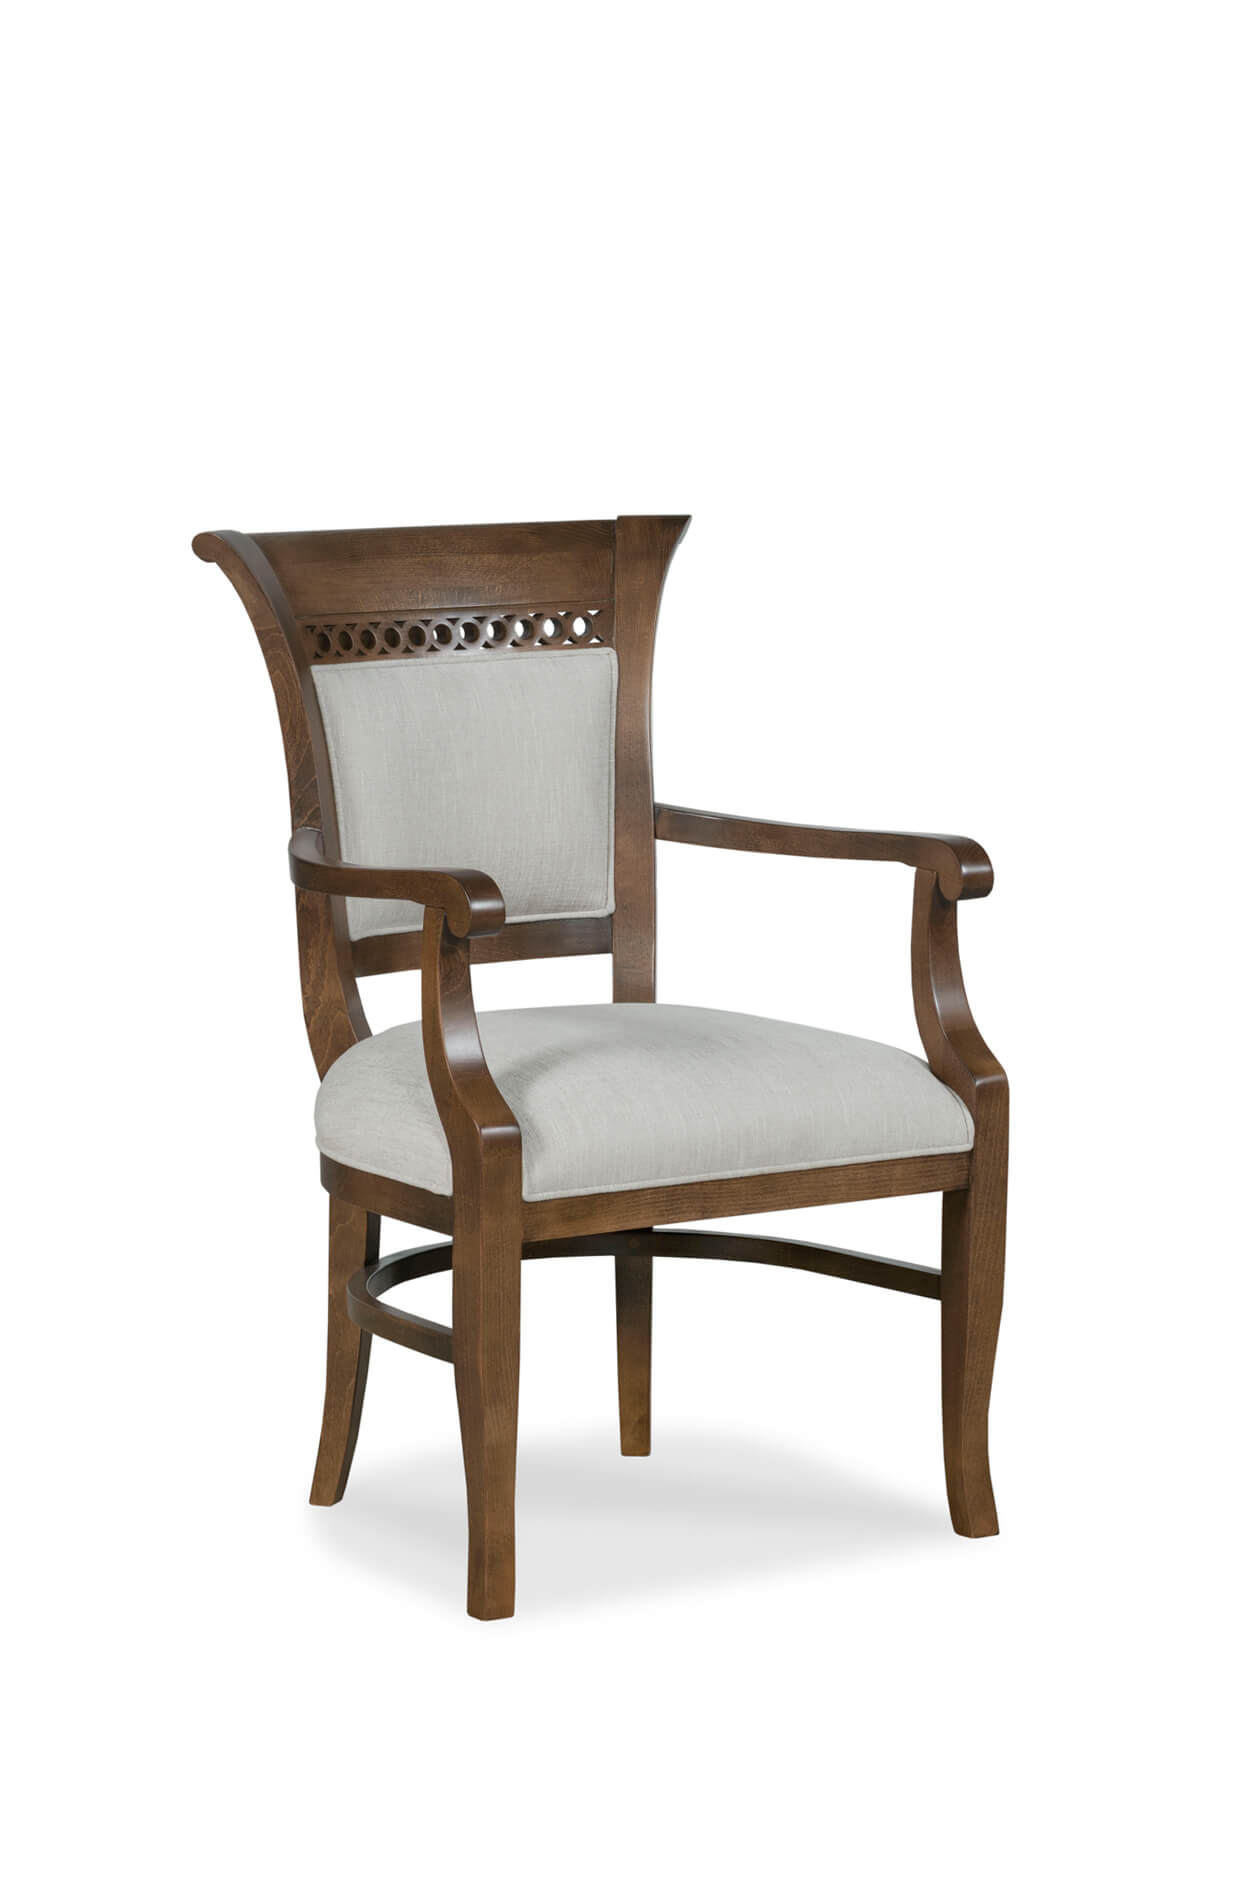 Fairfield's Bonham Upholstered Dining Arm Chair